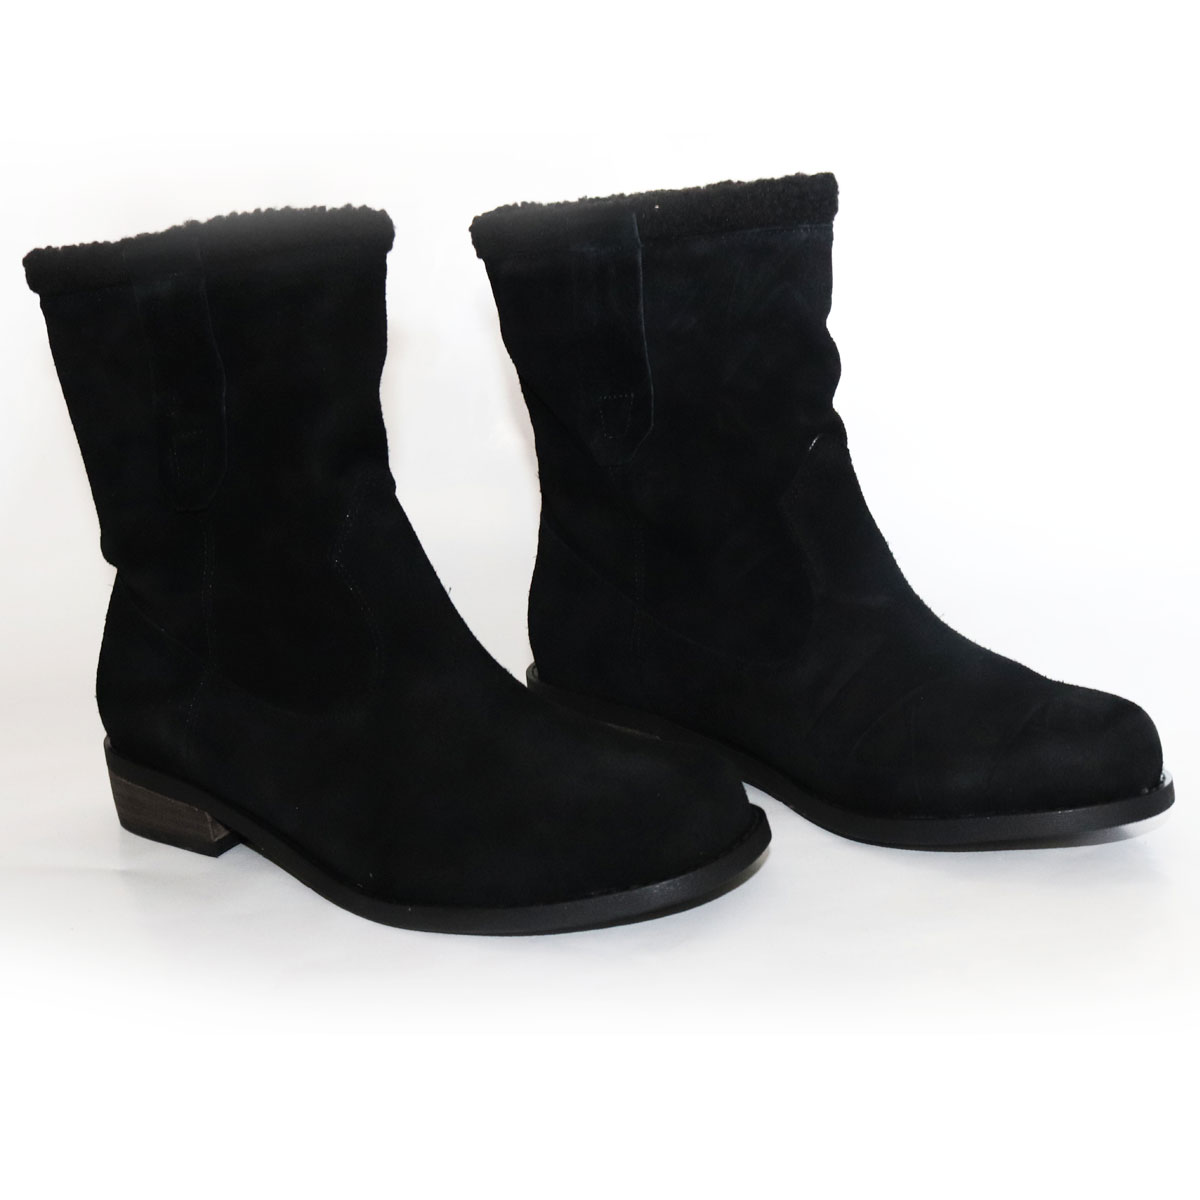 Sole Society Black Suede Boots